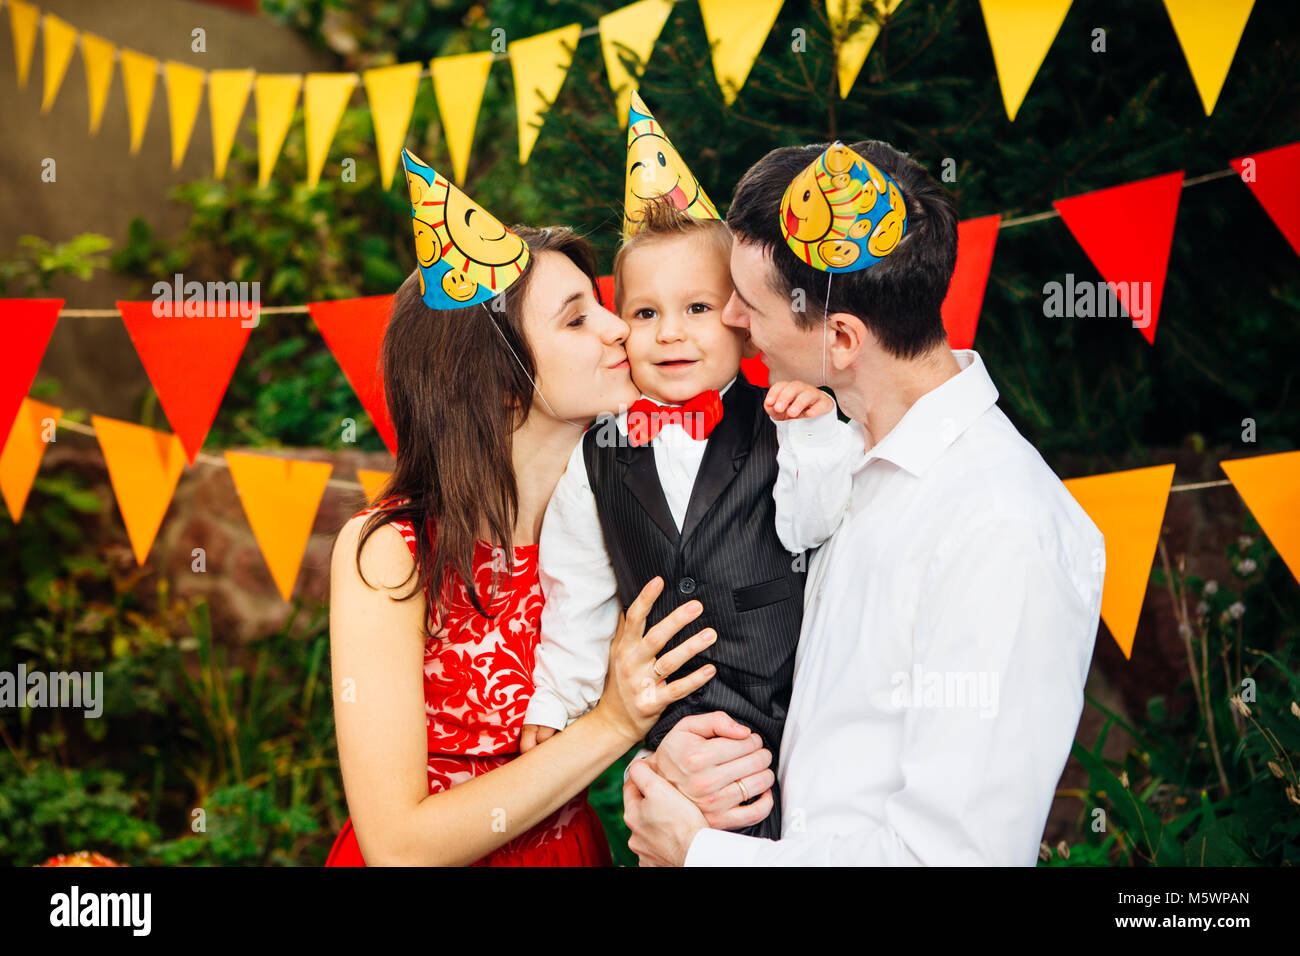 children birthday party. Family father and mother hold son of one year of birth in arms and kiss cheekin the background - Stock Image